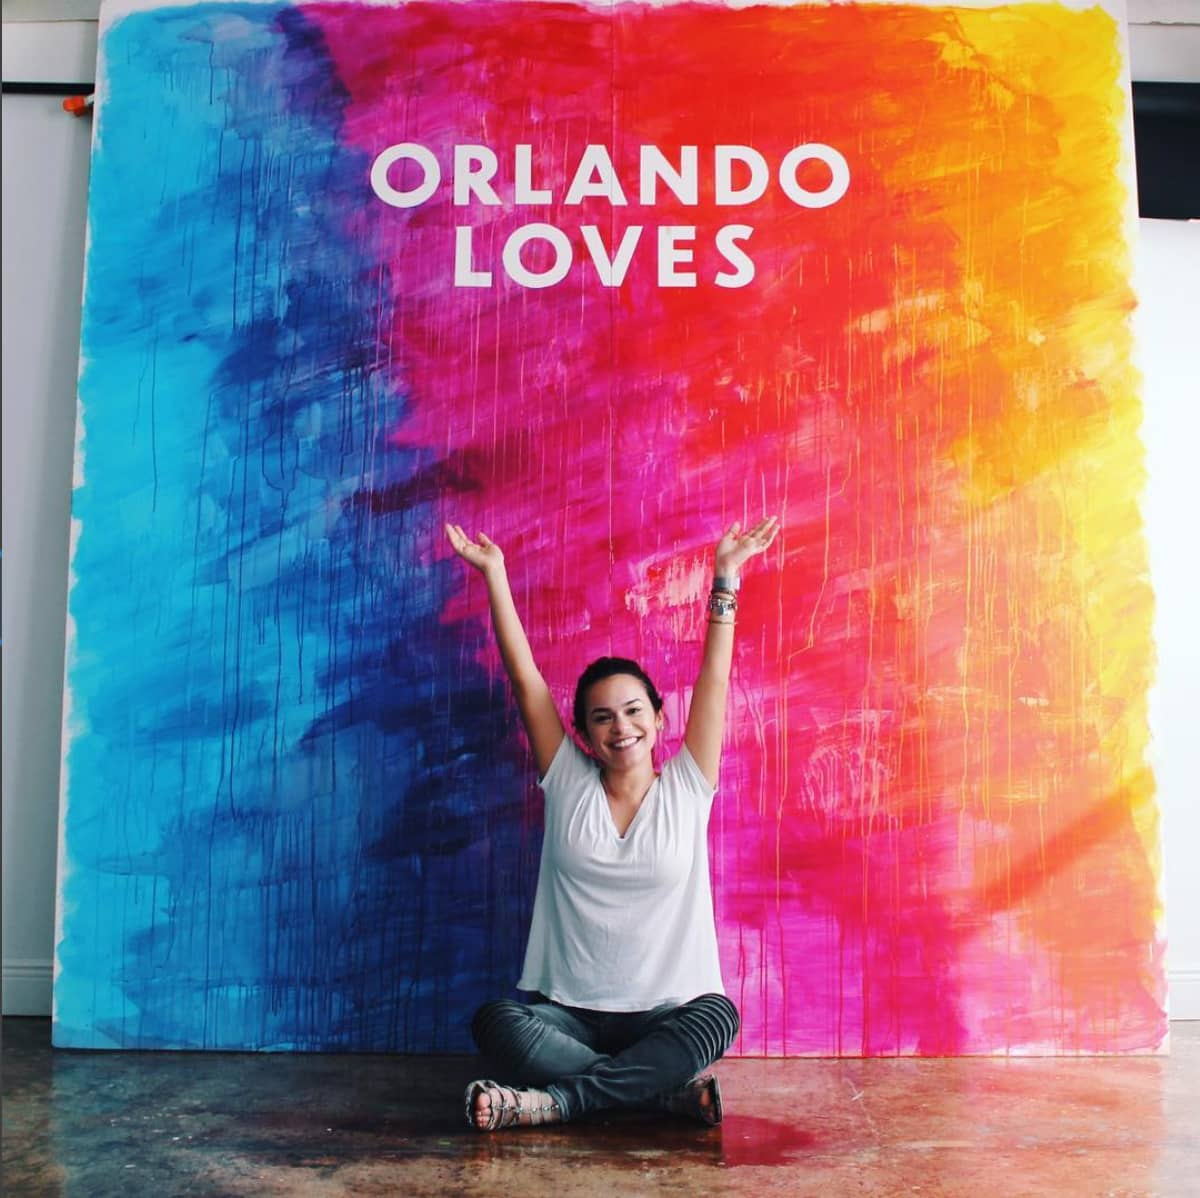 Orlando Loves hand painted rainbow backdrop for Zebra Coalition by Hillery Powers